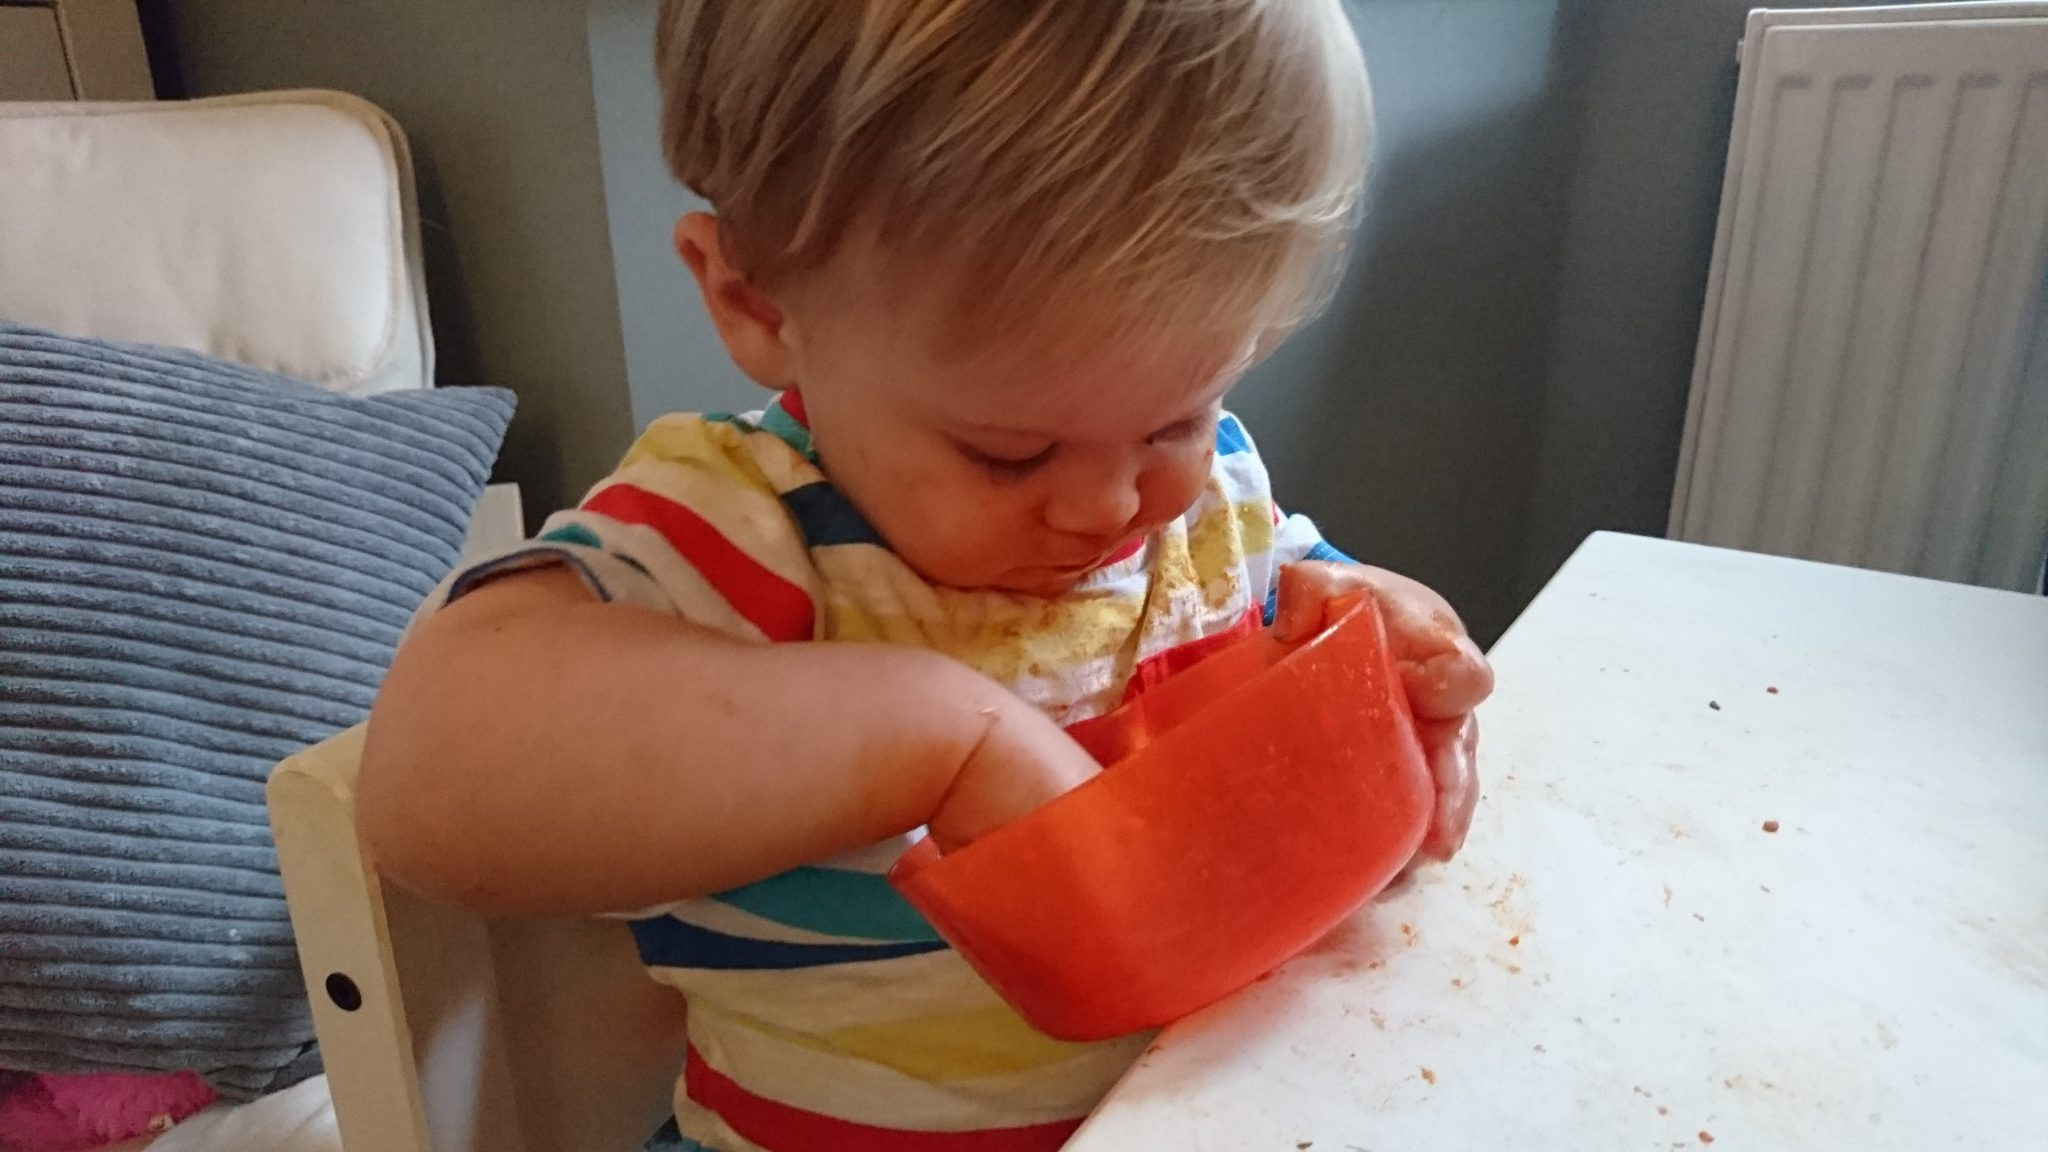 HELP! My toddler is a fussy eater - tucking in